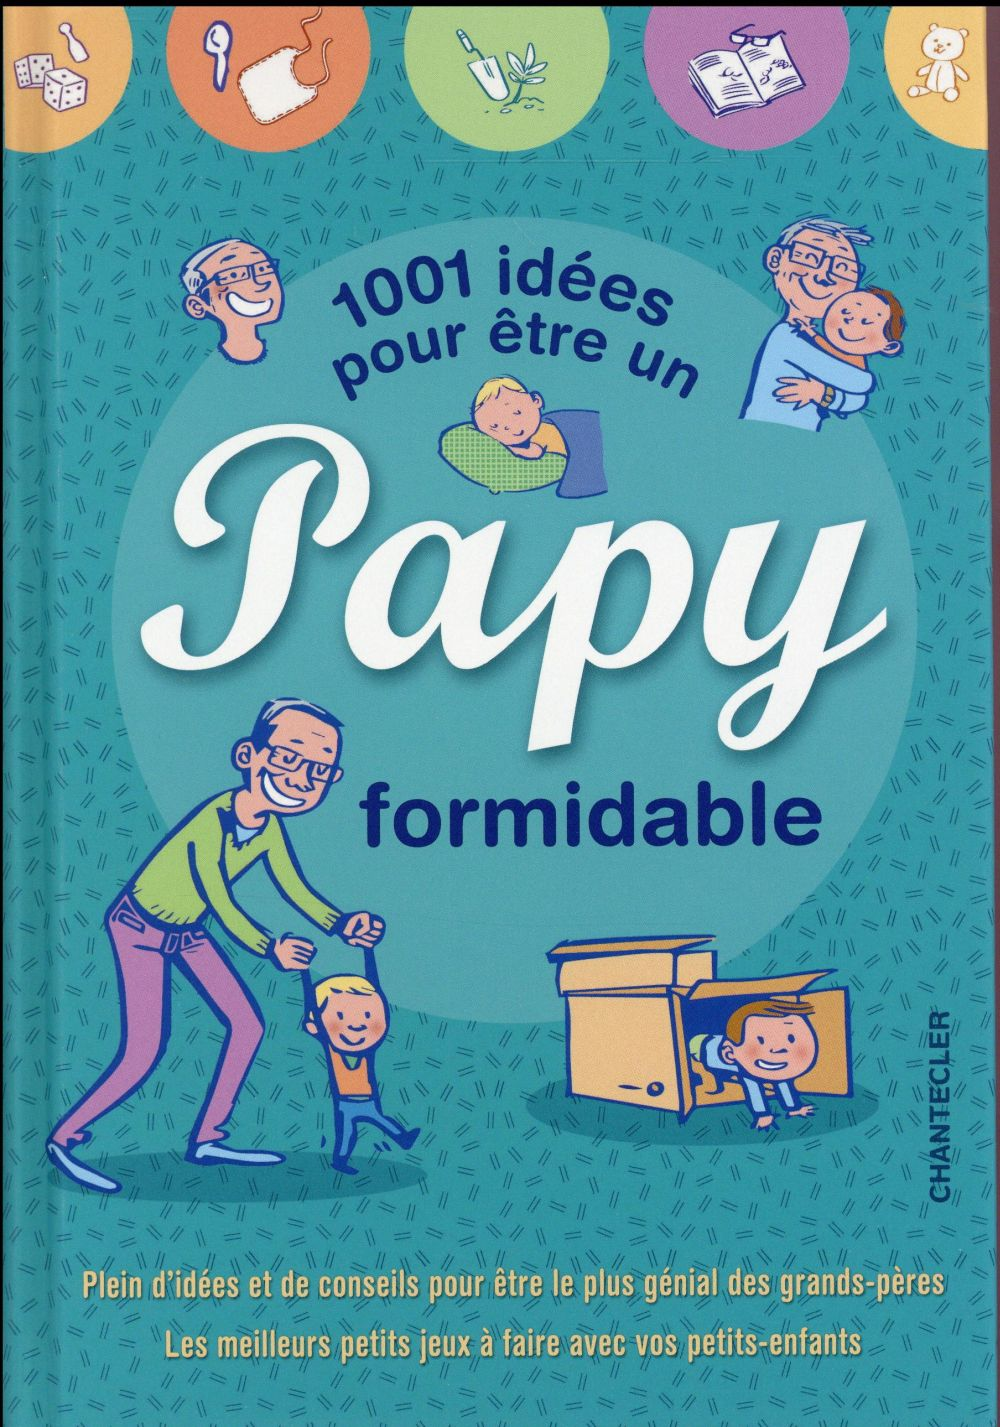 1001 IDEES POUR ETRE UN PAPY FORMIDABLE VAN HUMBEECK S. Chantecler